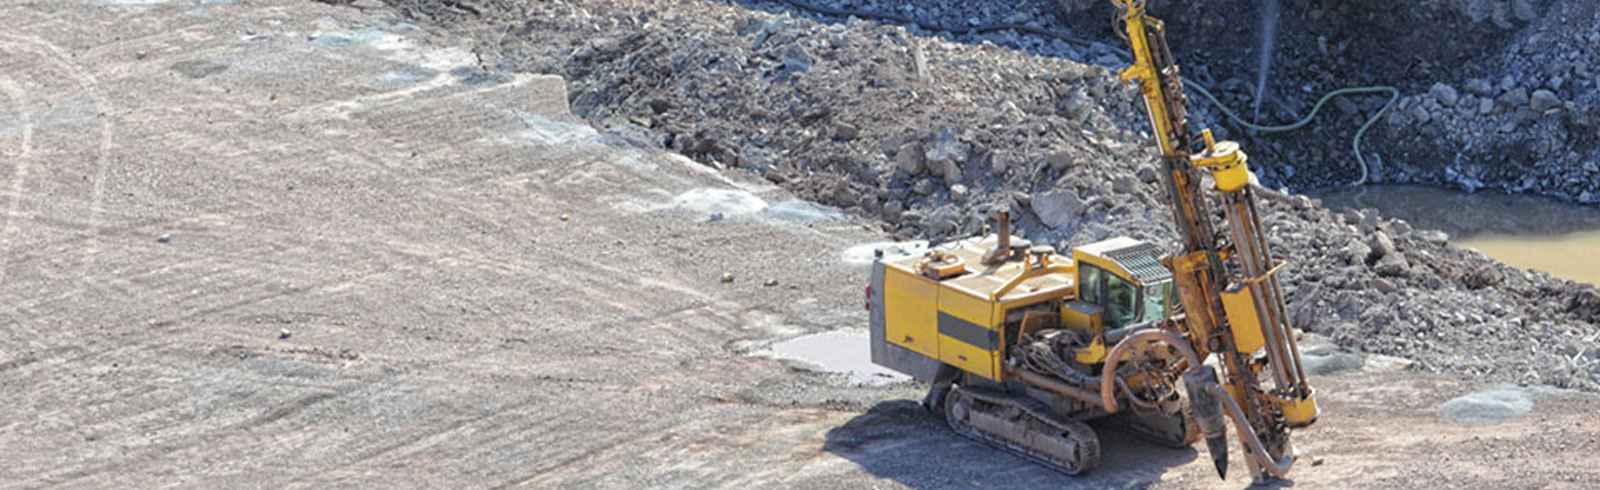 Geotechnical and Environmental Appraisals - Service - CWA